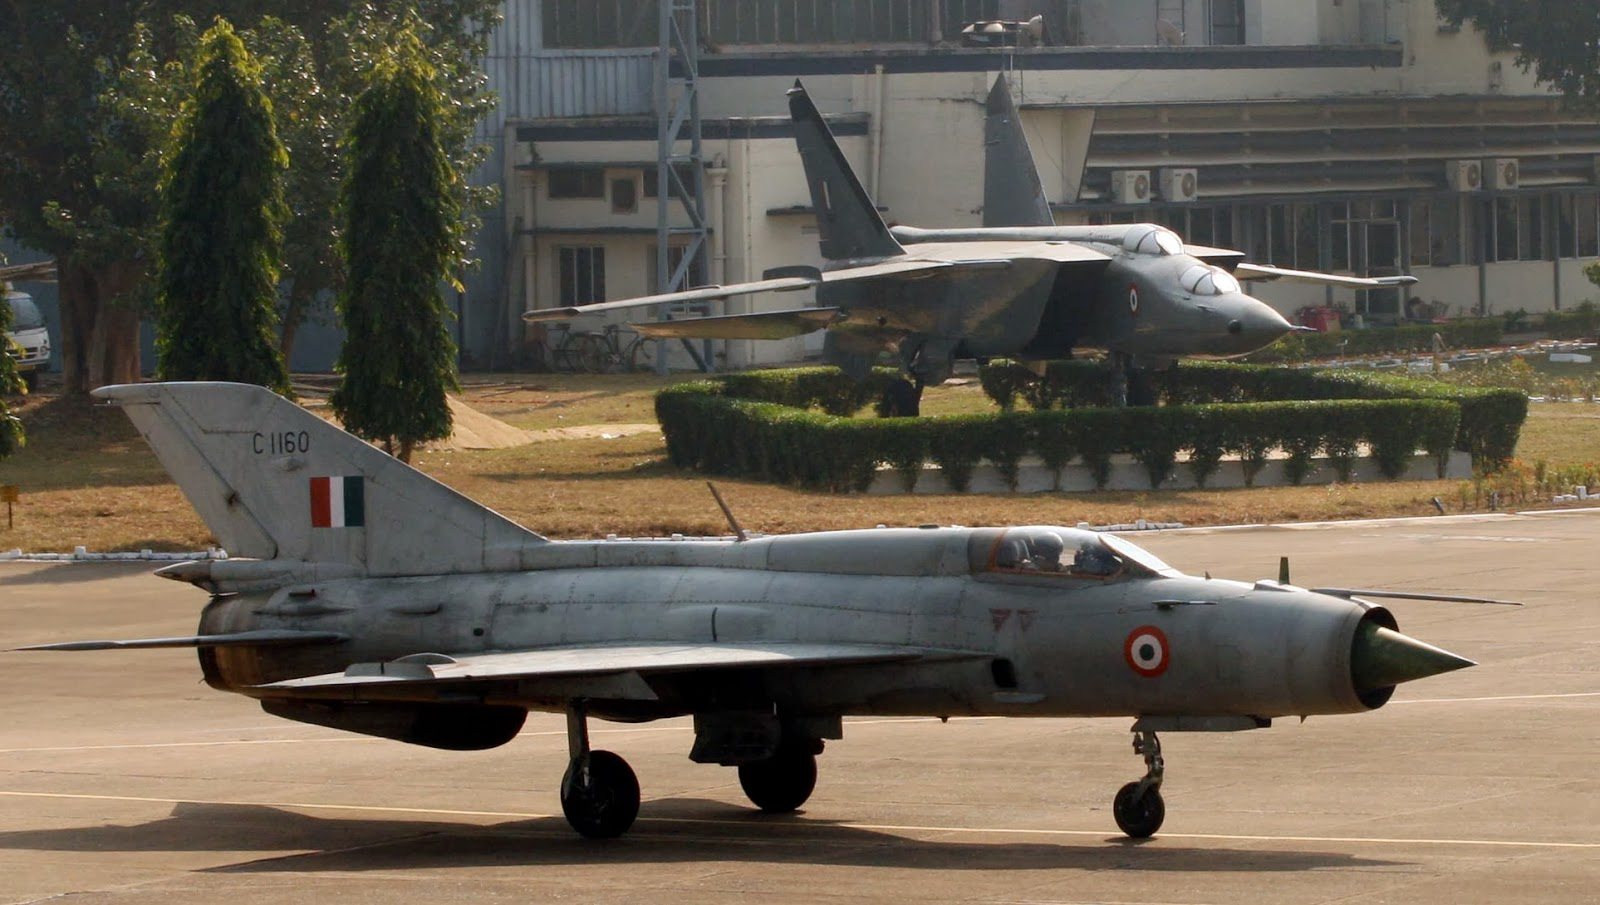 http://1.bp.blogspot.com/-t3_K9ss-tUc/UqLZglClYXI/AAAAAAAAVcg/7j-edVowd_o/s1600/Mig-21+FL+taxying+past+a+phased+out+Mig-25+trainer+aircraft+at+Kalikunda+airbase+in+West+Bengal.+The+Mig-21+FL+will+also+be+phased+out+of+IAF+on+Dec+11,+2013+after+completing+50+years+of+service..jpg